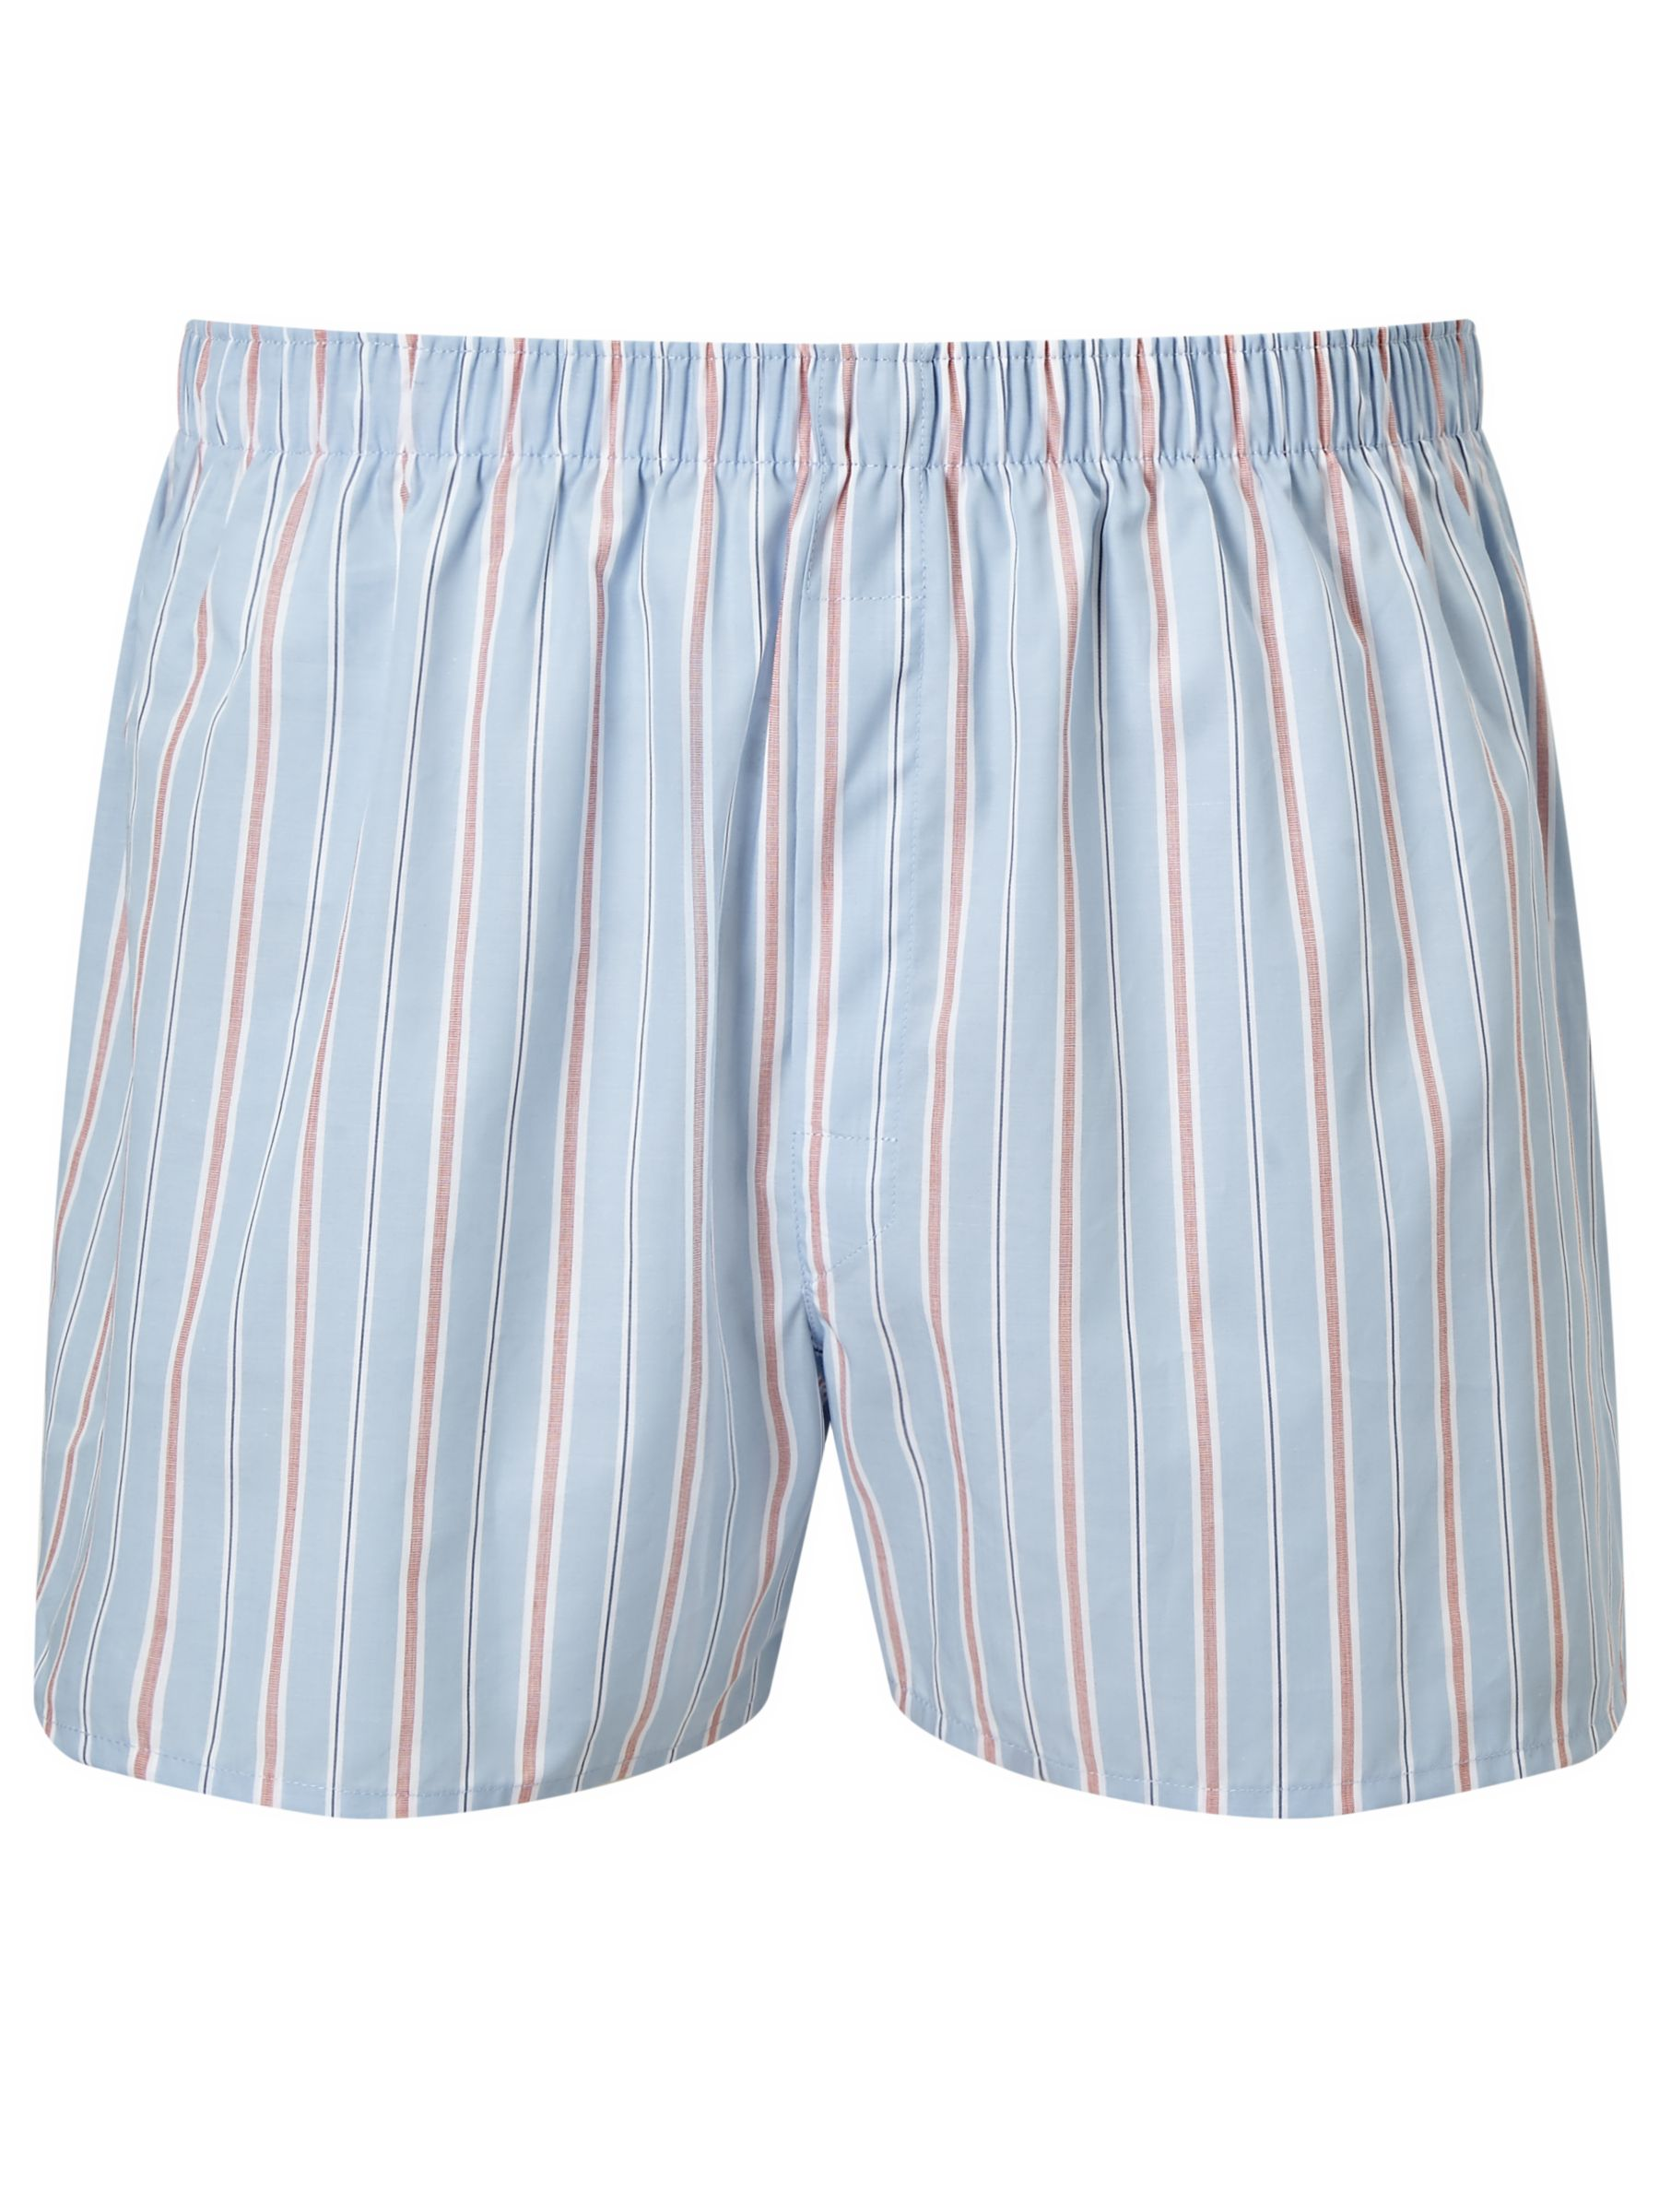 Sunspel Sunspel Classic Stripe Woven Cotton Boxers, Blue/Pink